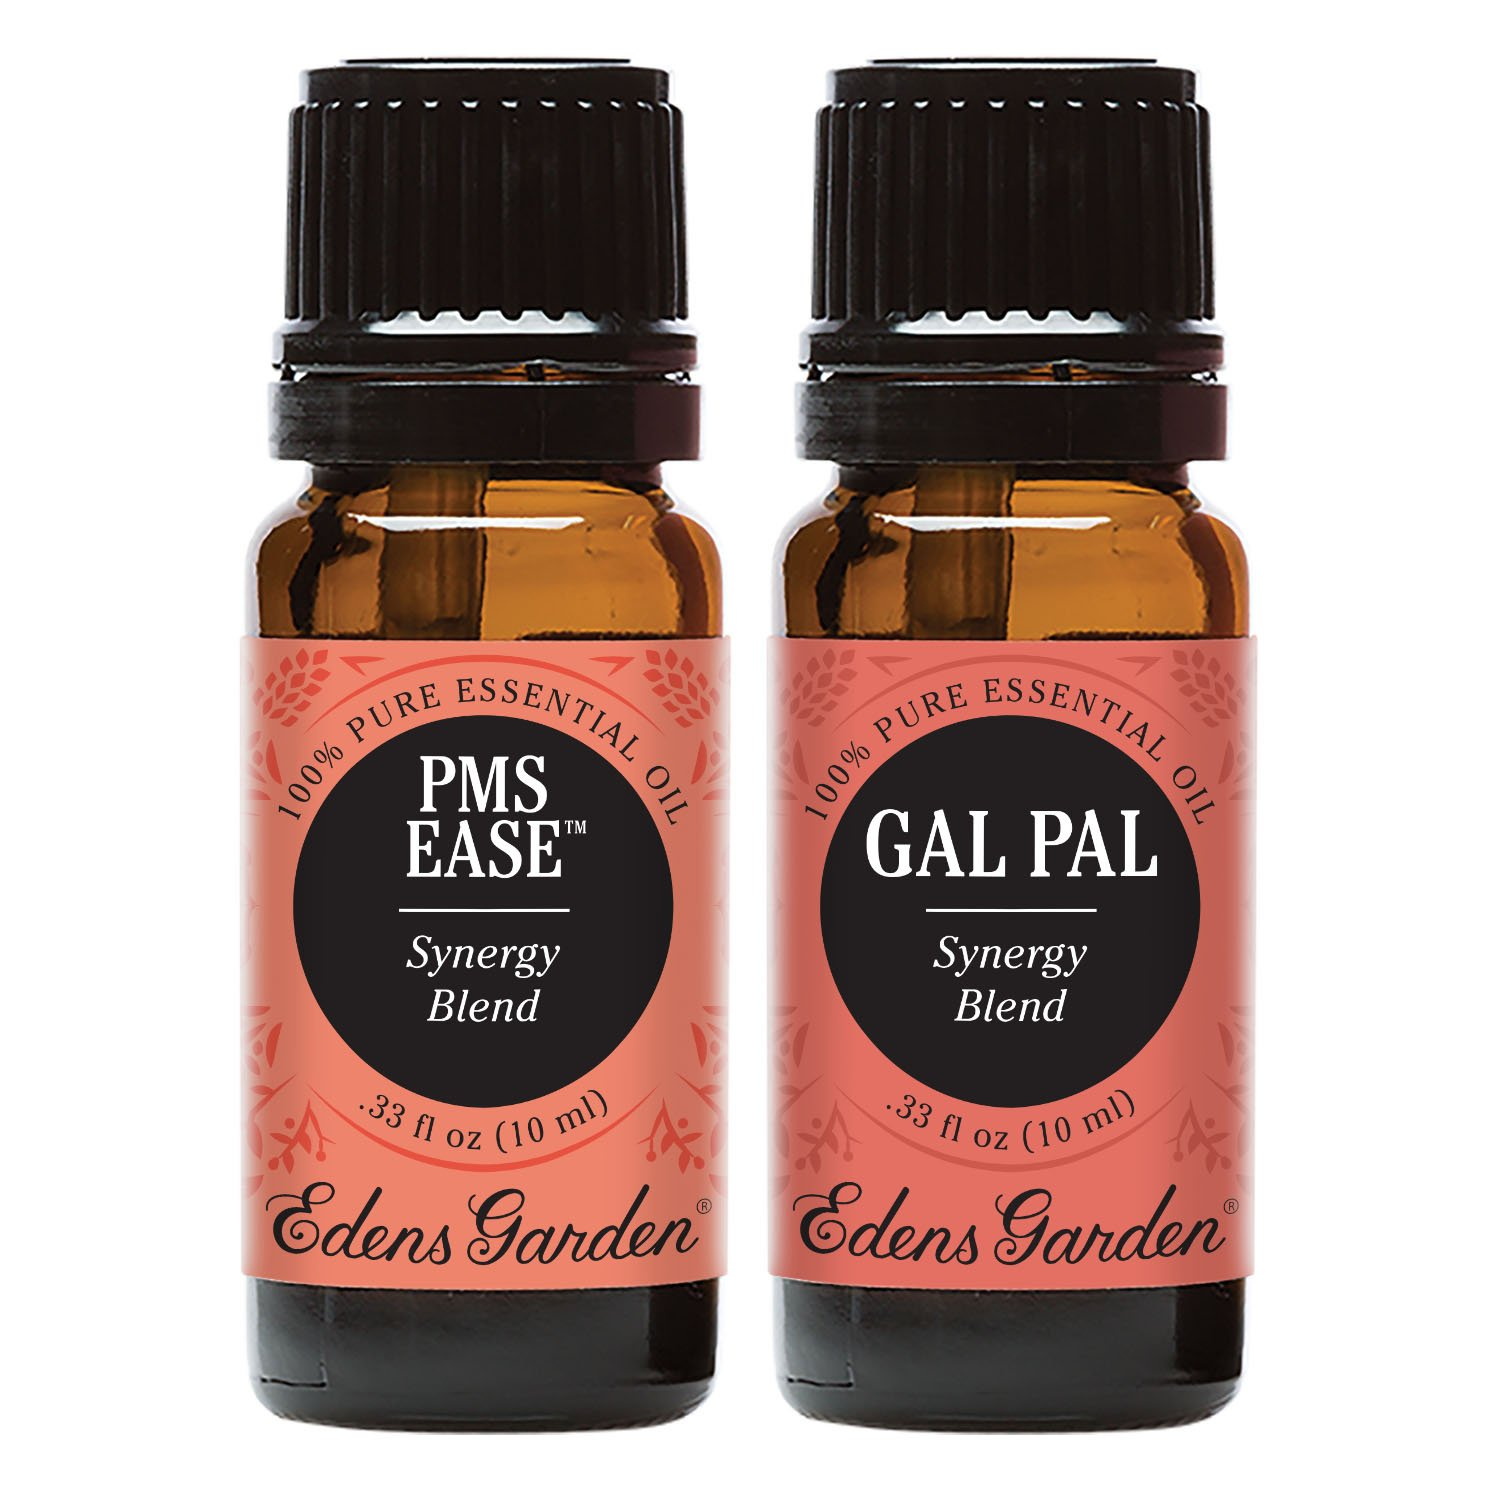 Edens Garden Gal Pal & PMS Ease Essential Oil Synergy Blend, 100% Pure Therapeutic Grade (Highest Quality Aromatherapy Oils), 10 ml Value Pack by Edens Garden